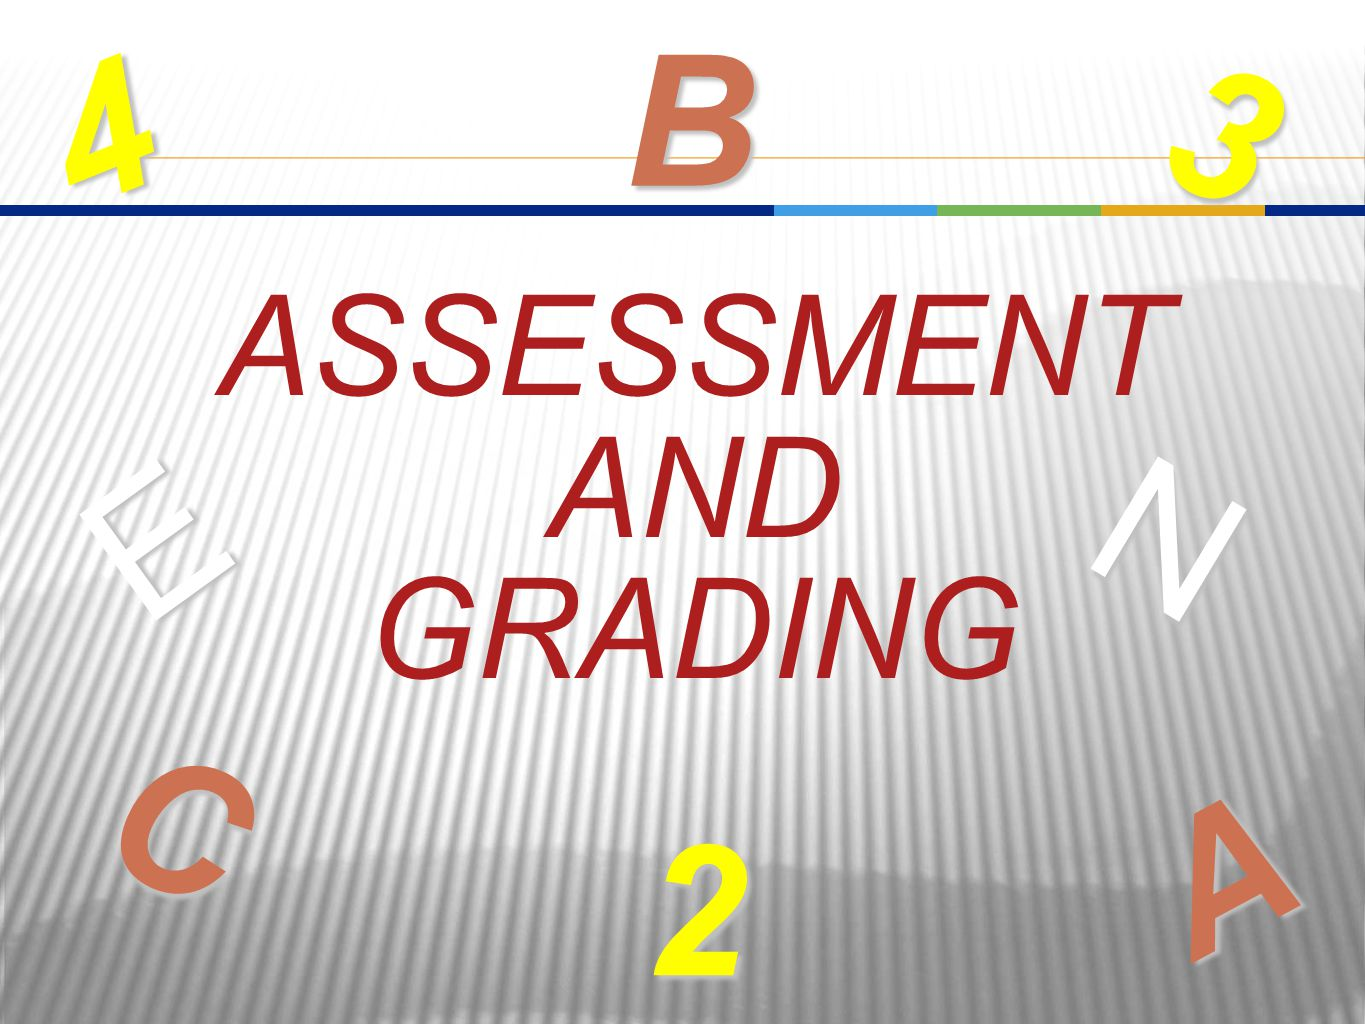 ASSESSMENT AND GRADING A C 4 3B2 E N